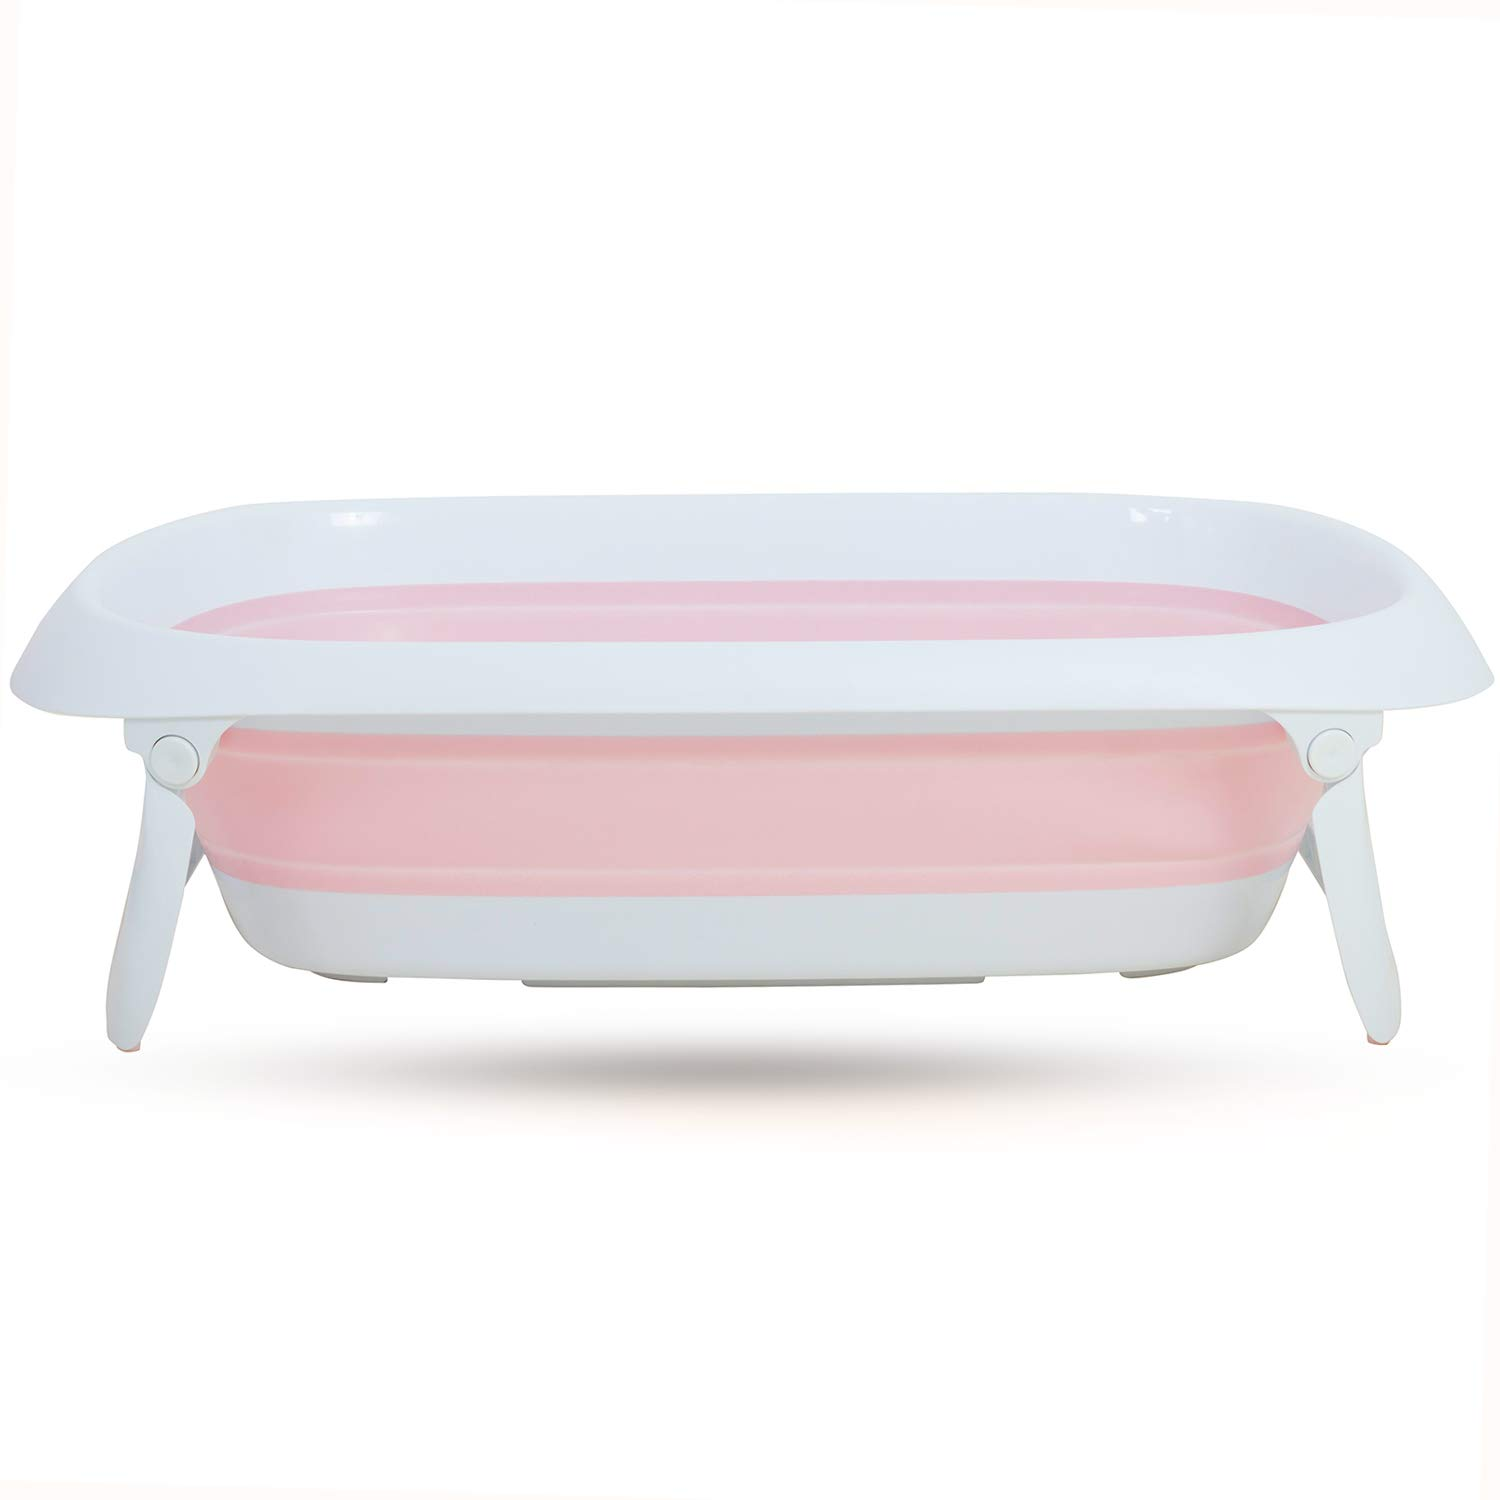 Baybee Bubble Tubby Baby Bathtub Double Elite - The Folding Baby Bath Tub for Kids (Tubby Pink)